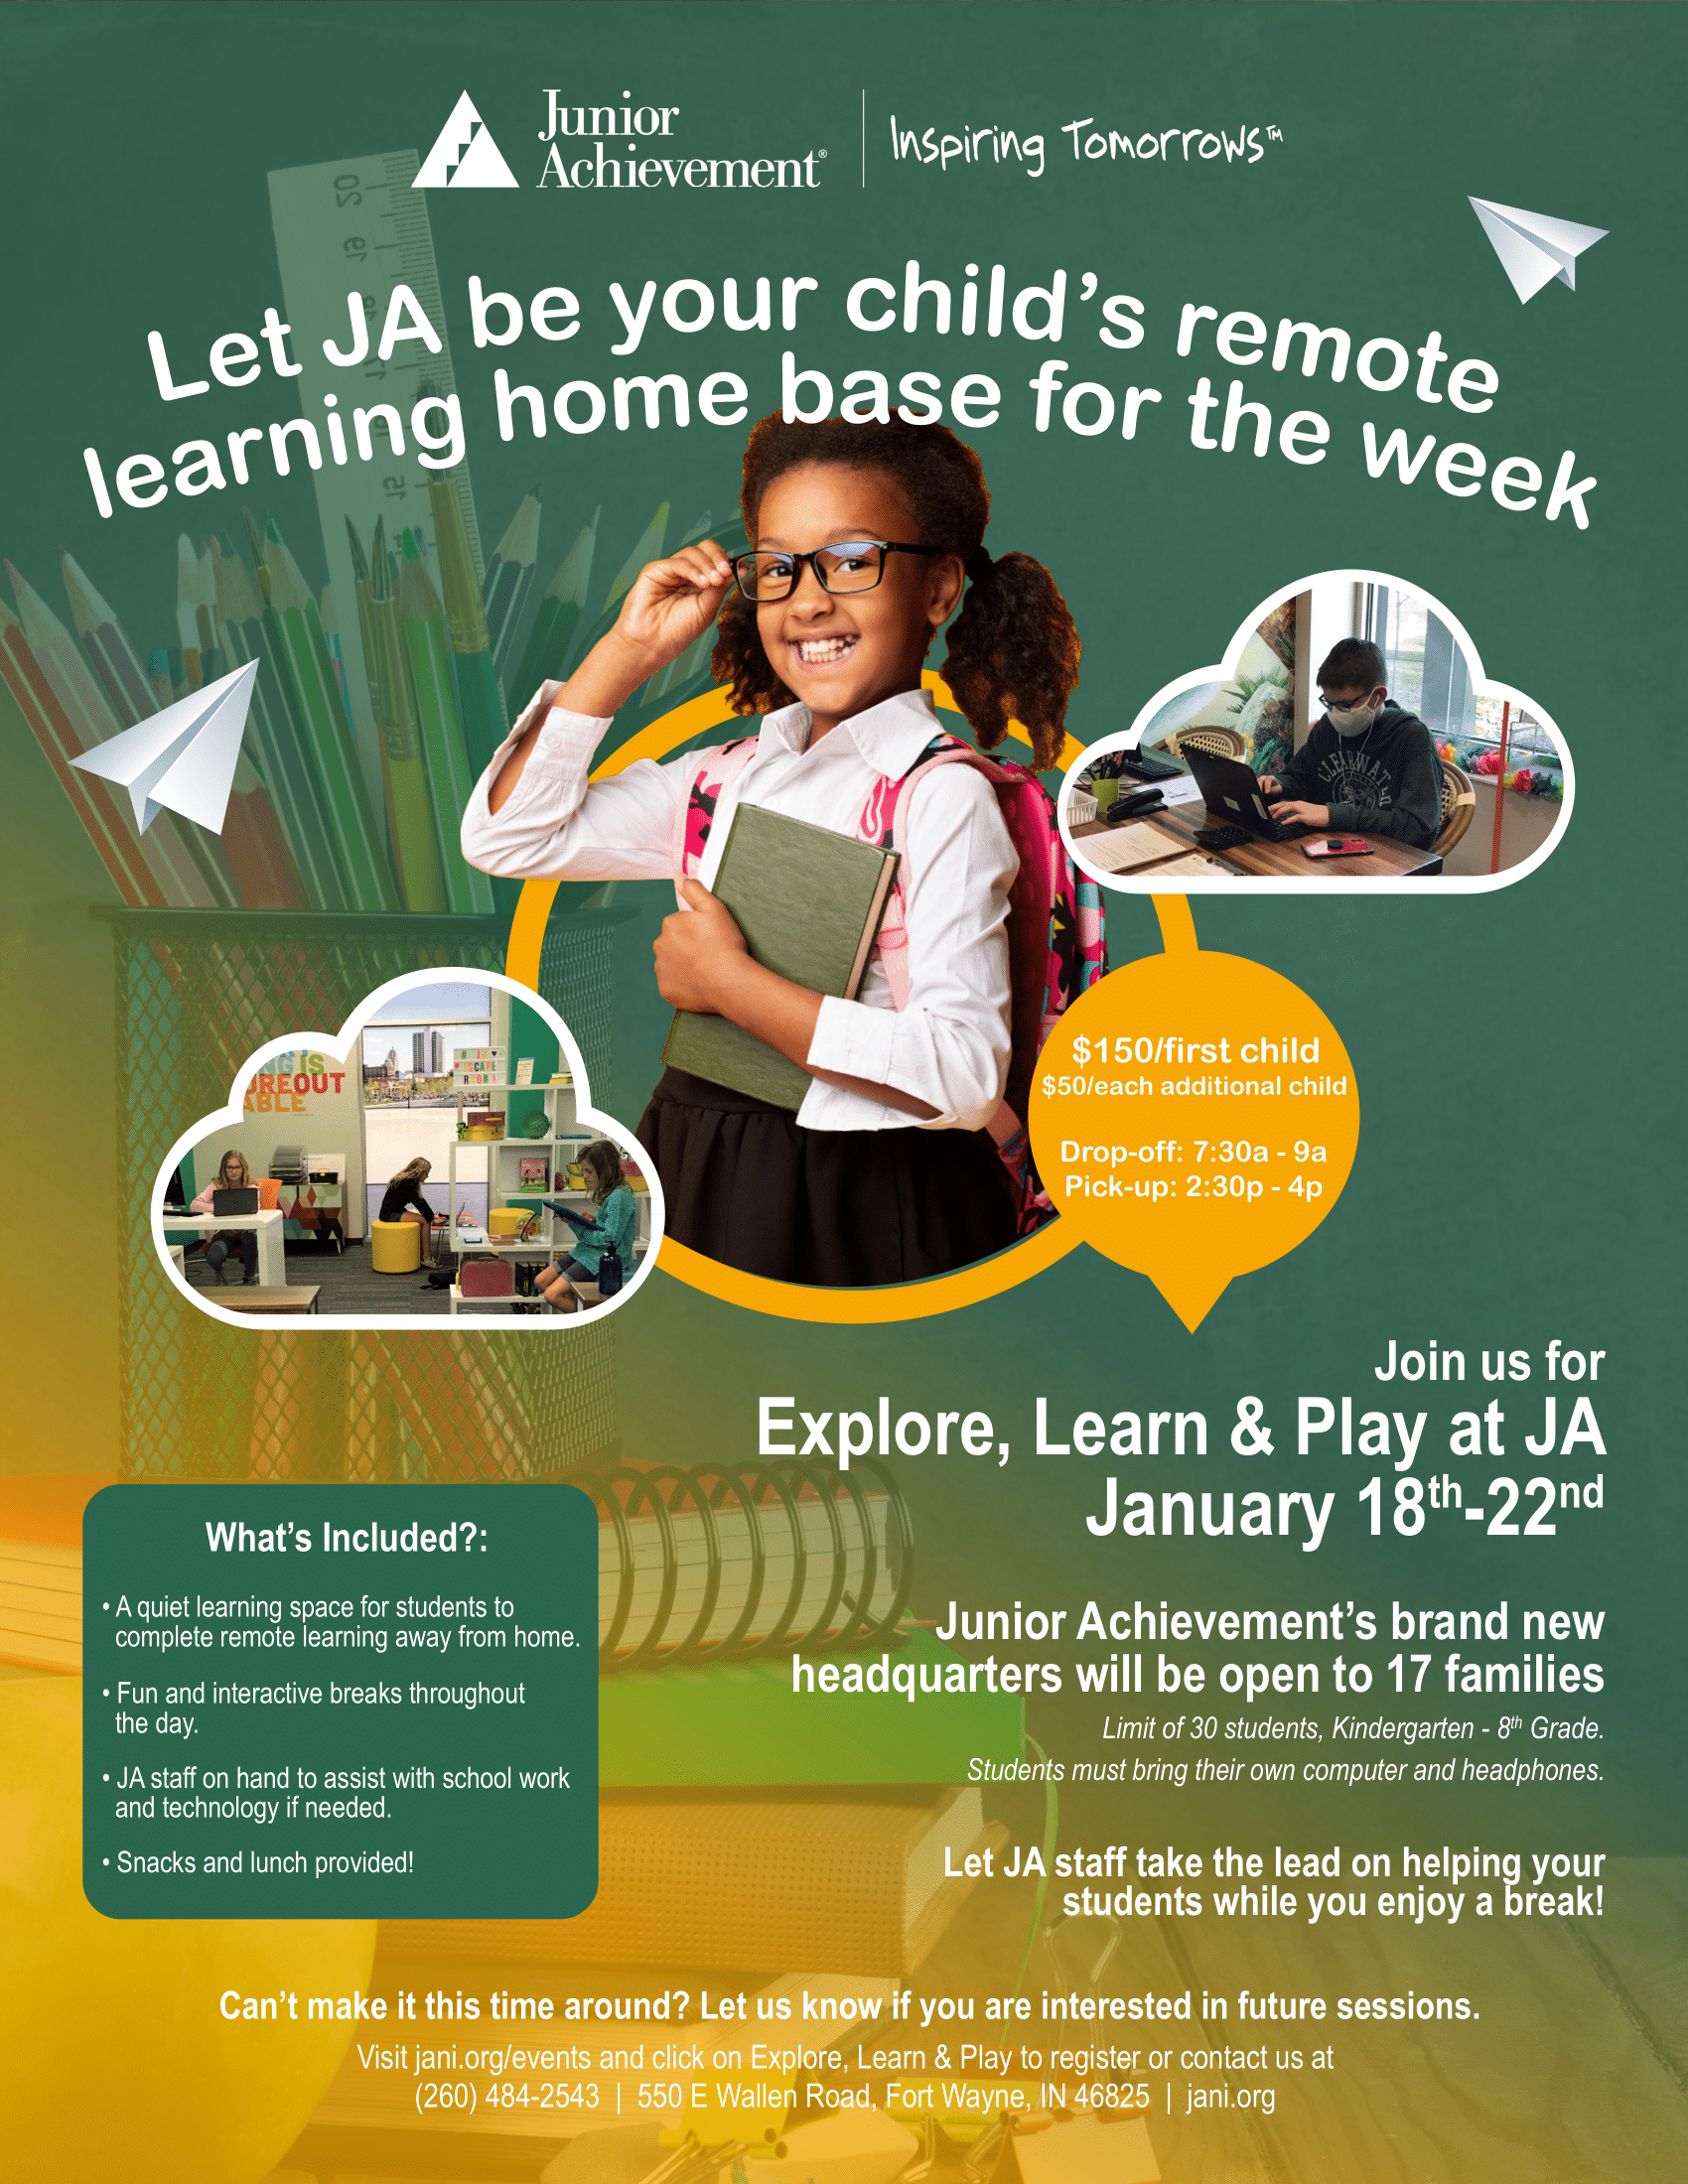 Explore, Learn & Play at JA!